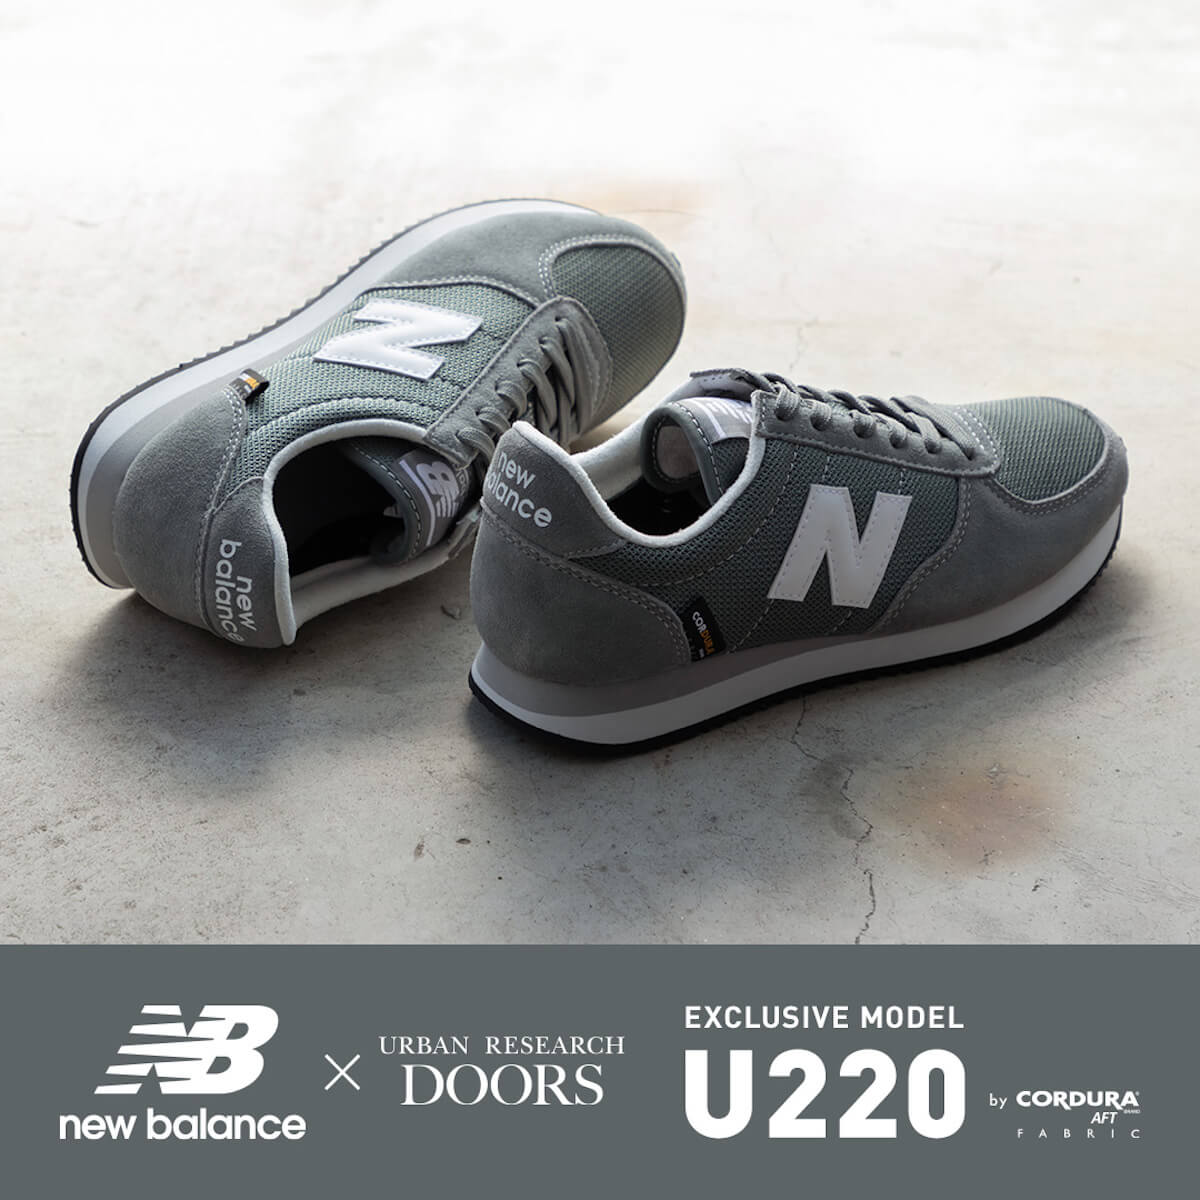 new balance × URBAN RESEARCH DOORS